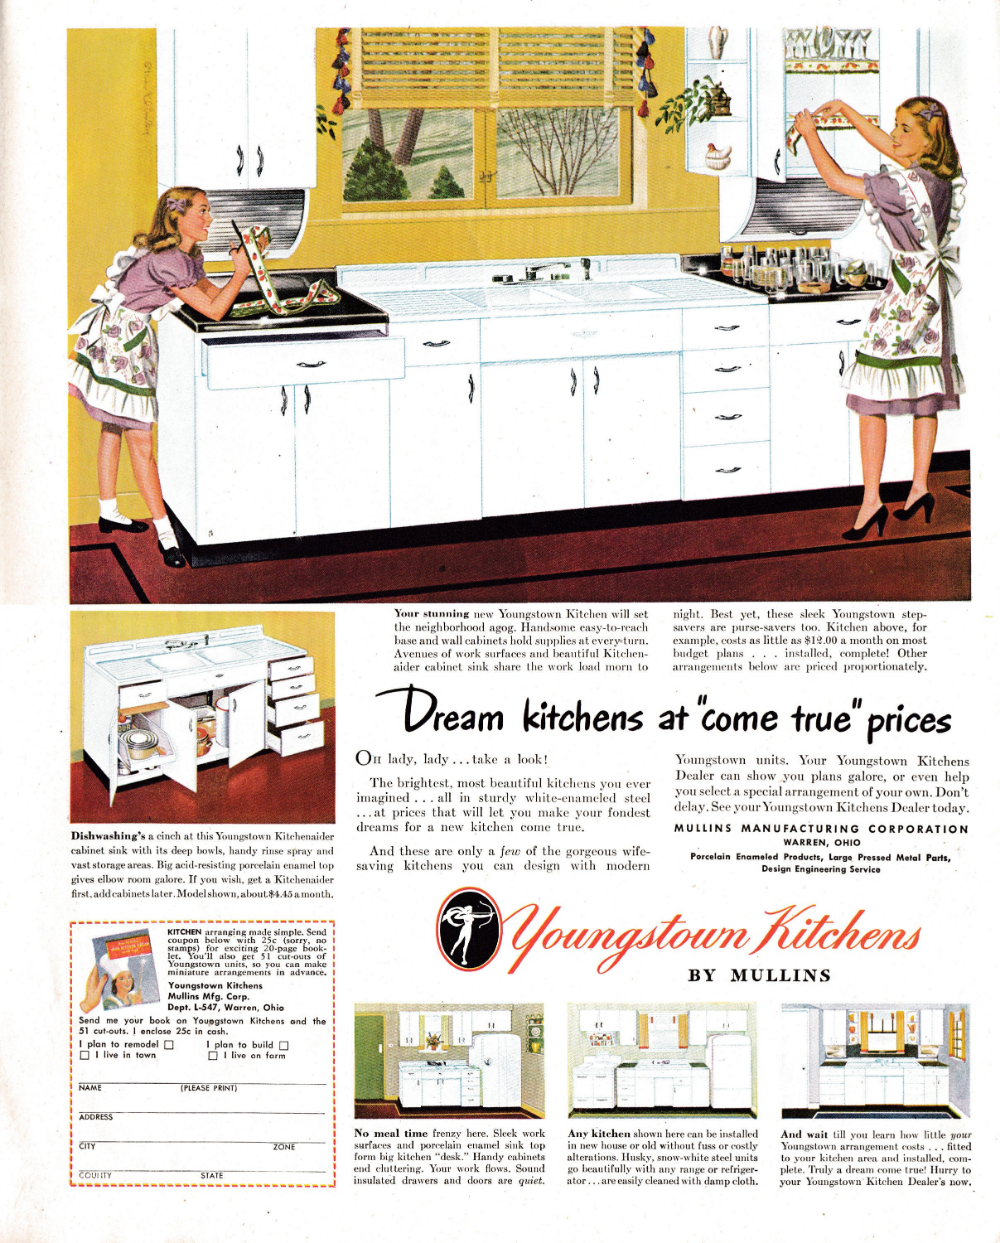 1947 Youngstown Dream Kitchen At Come True Price Original 13 5 Etsy In 2020 Dream Kitchen Retro Kitchen Decor Old Sink